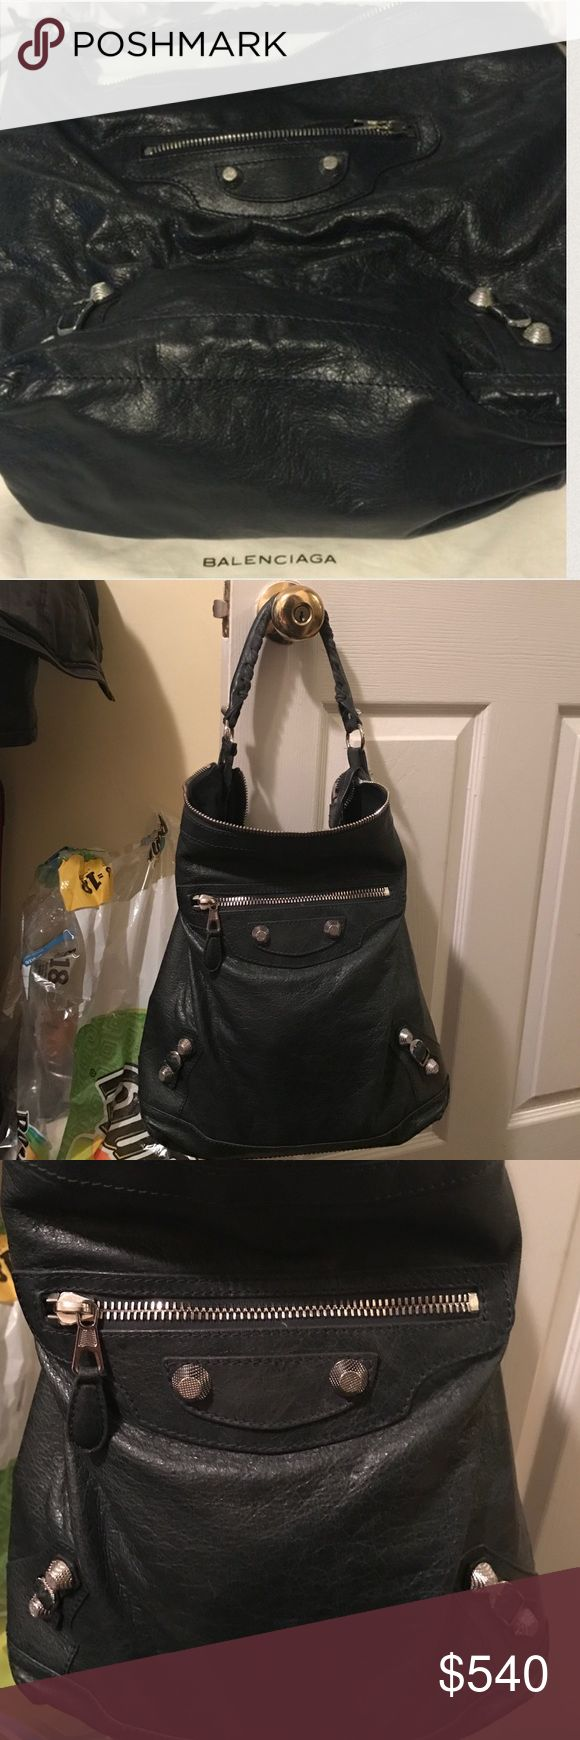 Balenciaga Day Hobo - anthracite w/ Giant Hardware This is a 100% authentic Balenciaga day bag in anthracite grey with giant hardware. This bag retails for $1595, is in good condition With  no STAINS to leather or damage to hardware. Used only for 3 months worth of time since new. Truly in good shape! Leather is soooo soft and slouchy and hardware is silver to compliment the grey leather. This is a Great bag. Shows very minor signs of wear. Comes with dust bag. Bag is 10000% authentic.  No…